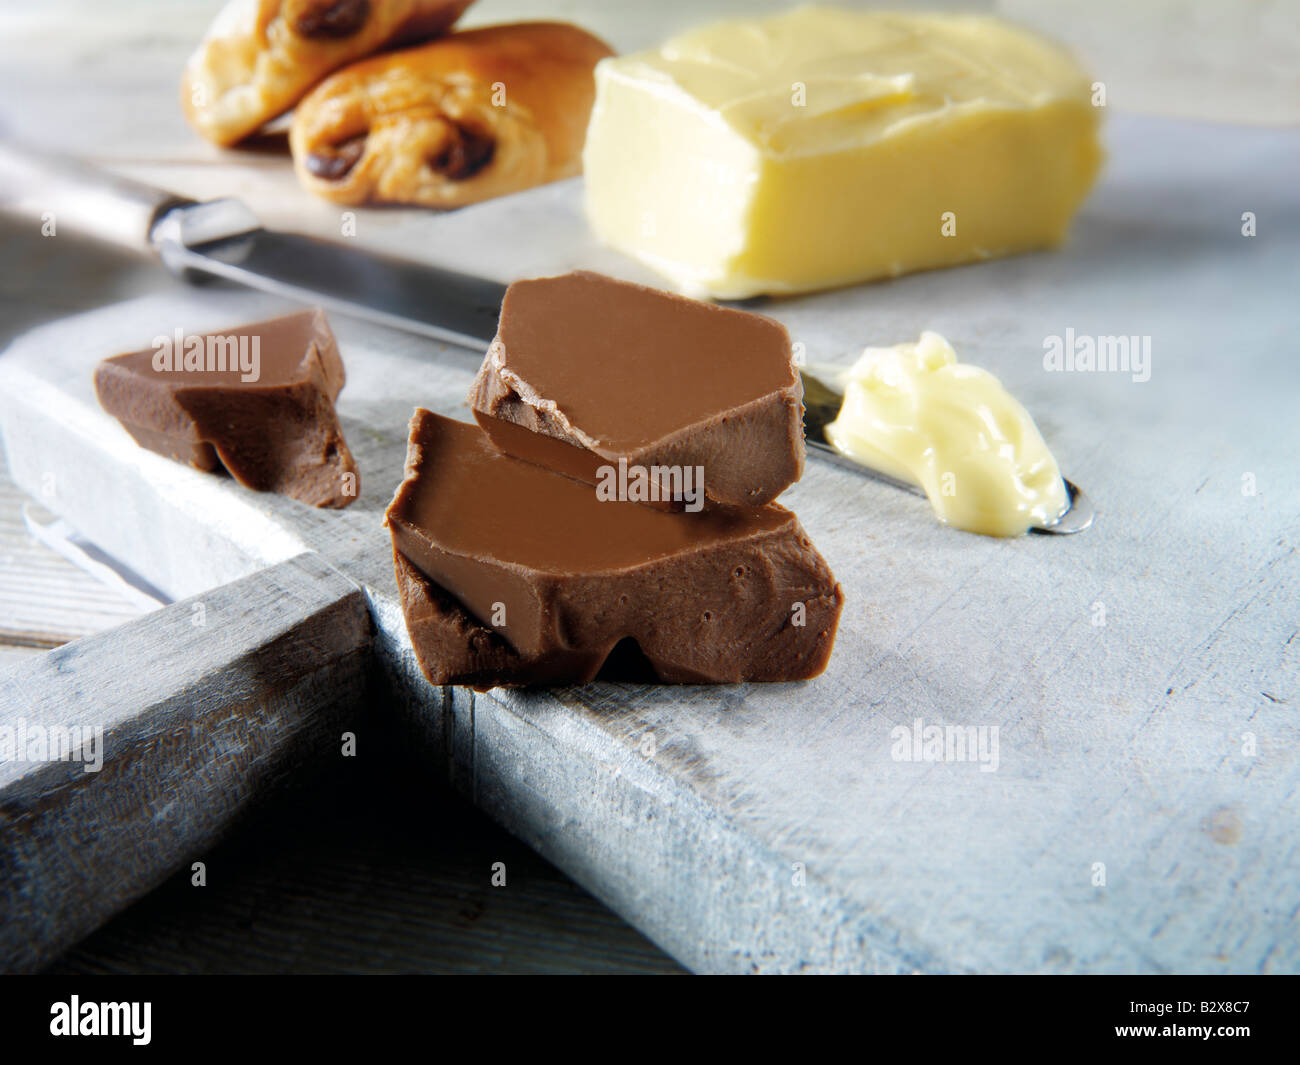 Chocolate all butter Croissants  - pain au chocolate - Stock Image